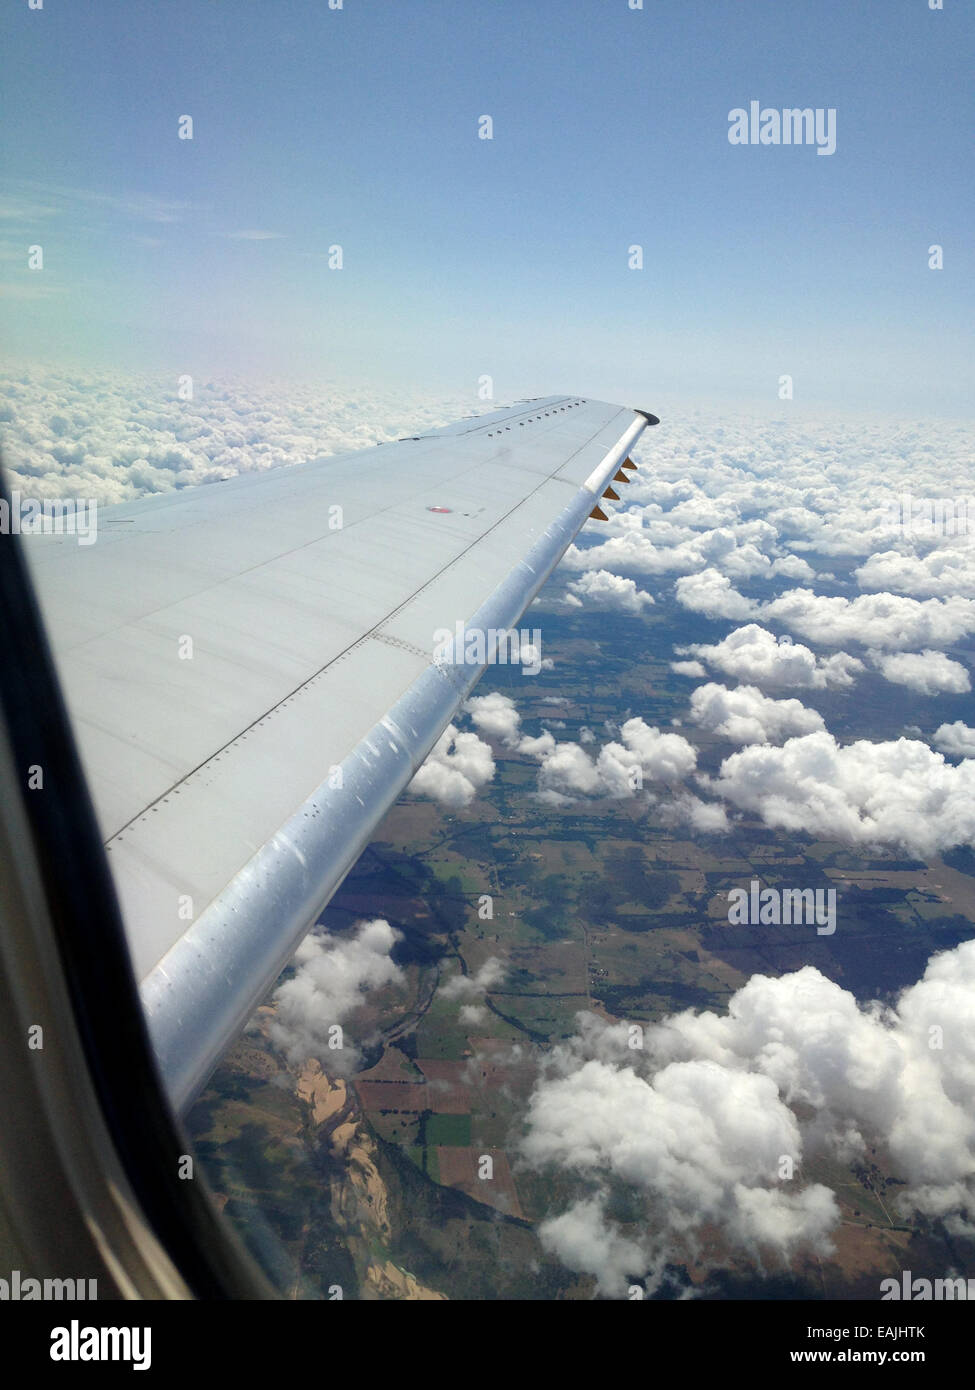 Airplane wing and clouds. - Stock Image